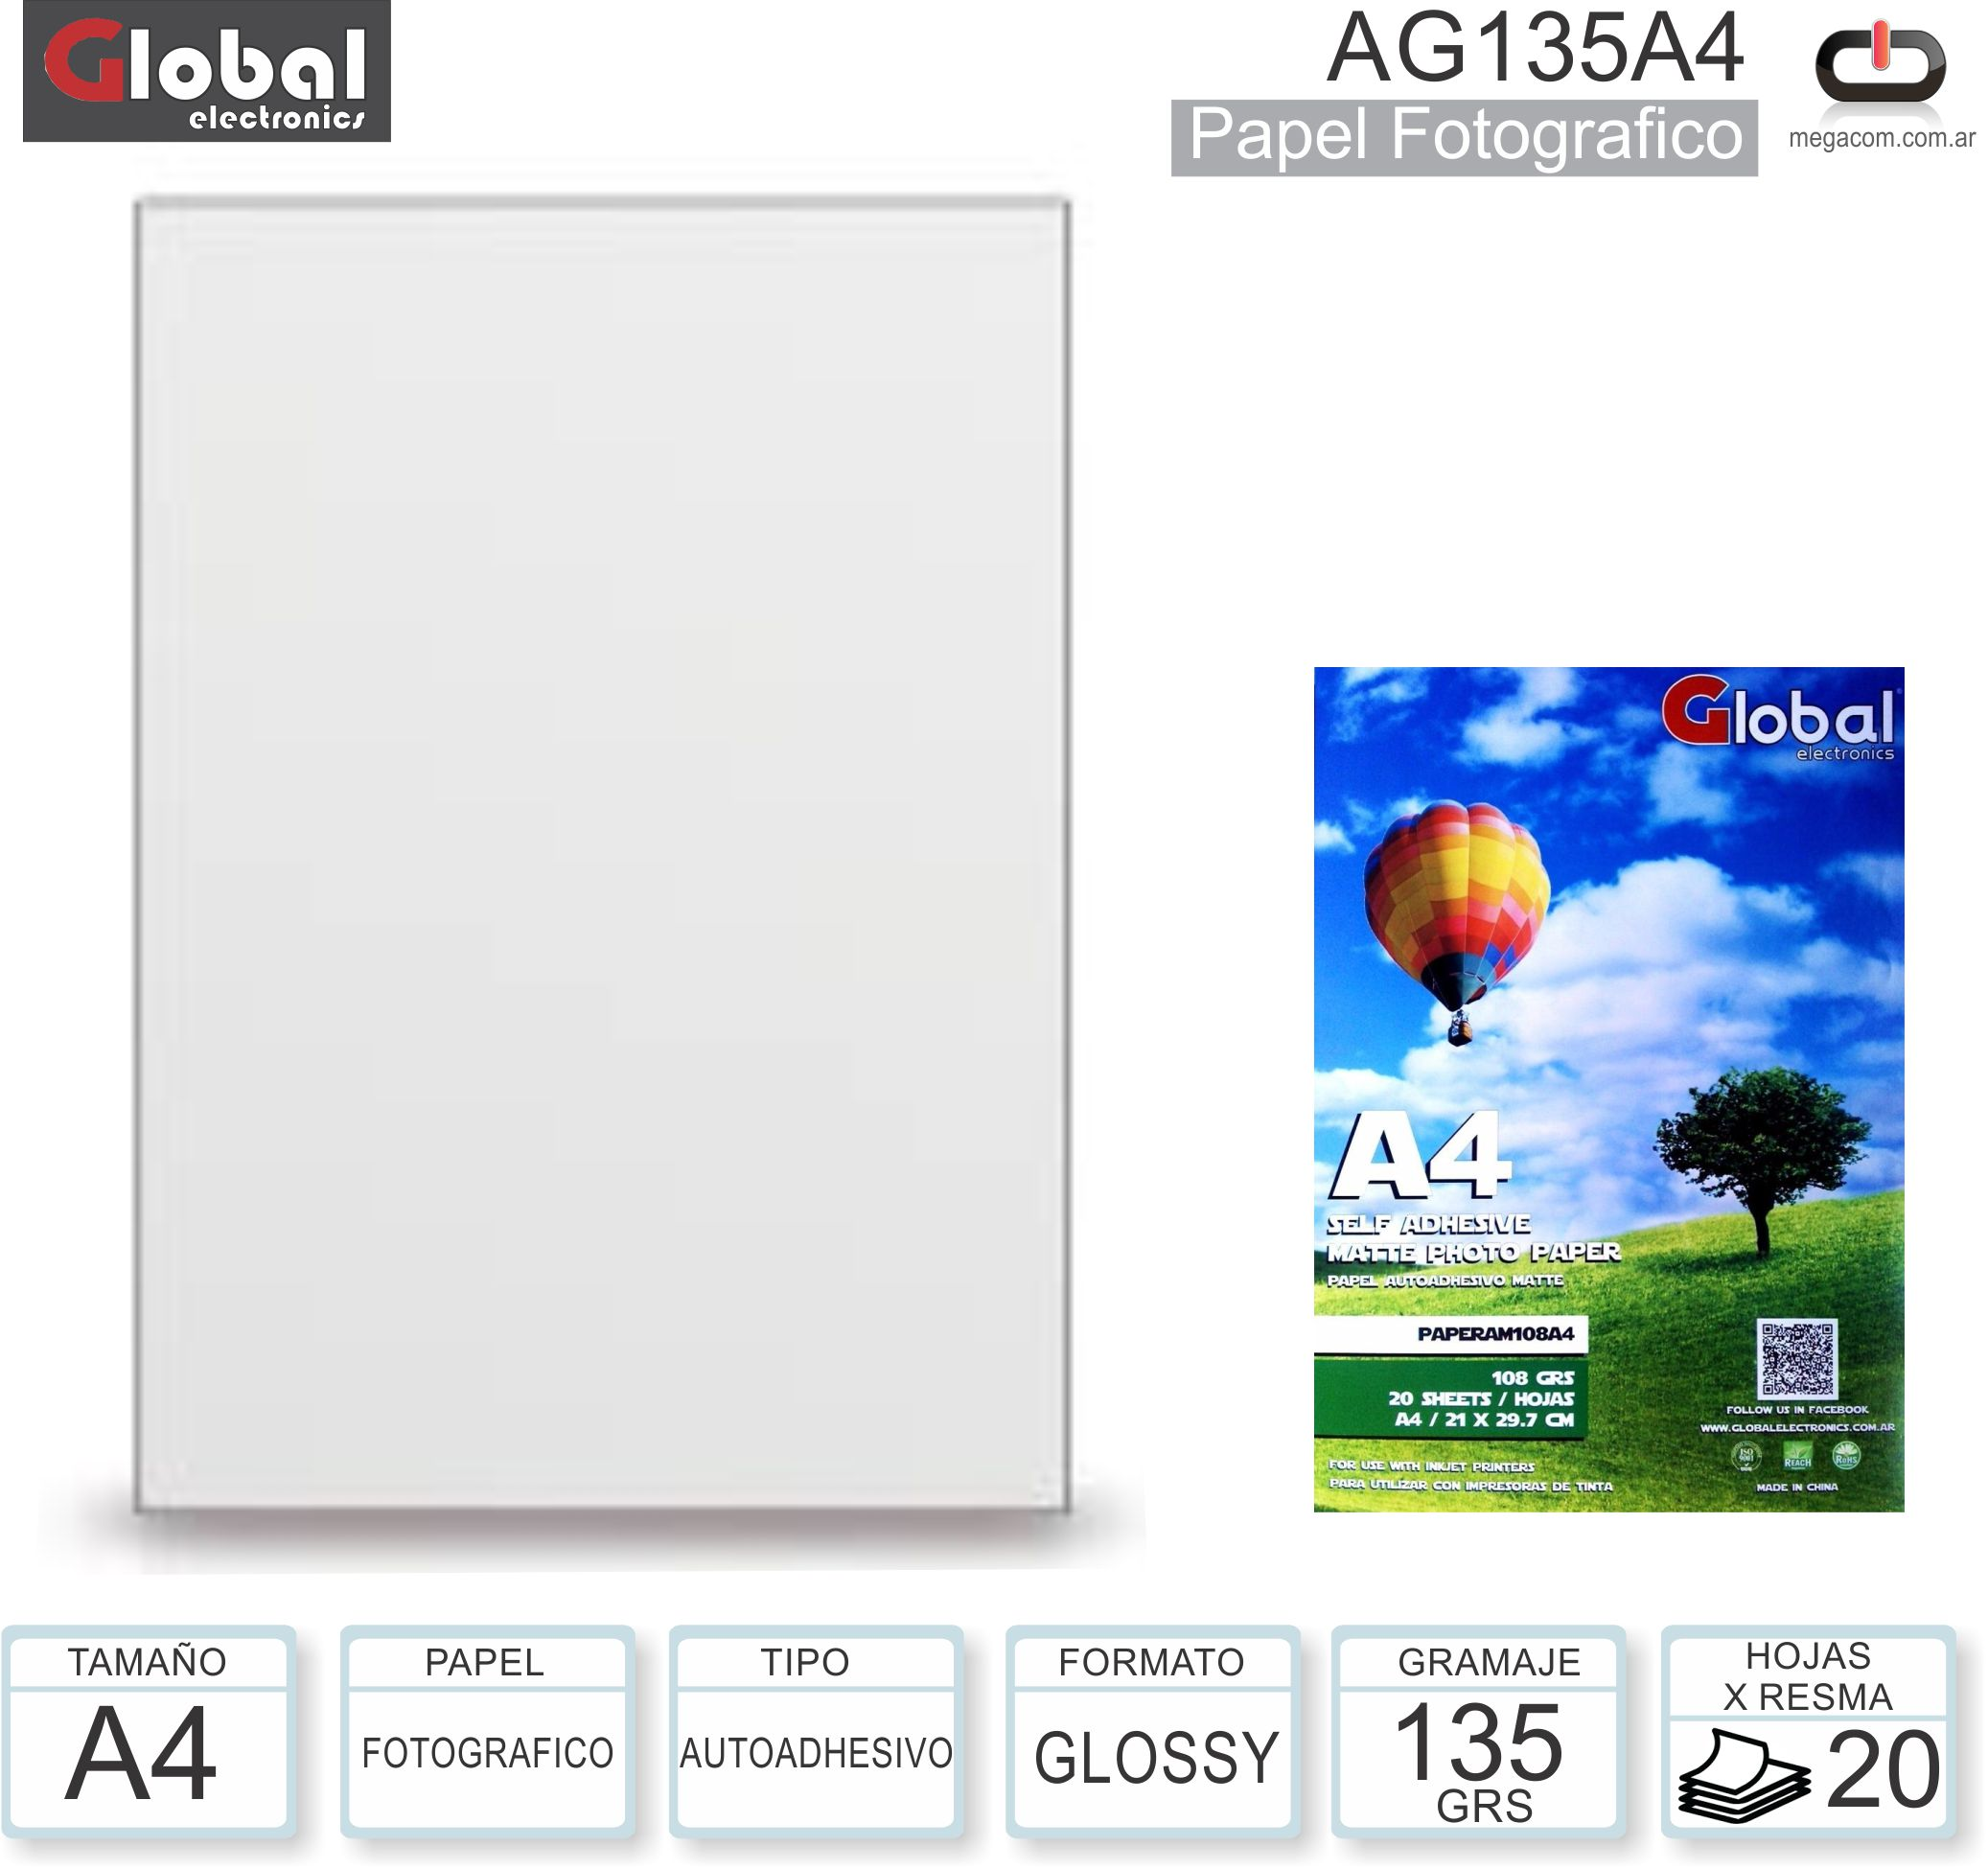 Papel A4 Adhesivo Glossy 135G/020H GLOBAL AG135A4